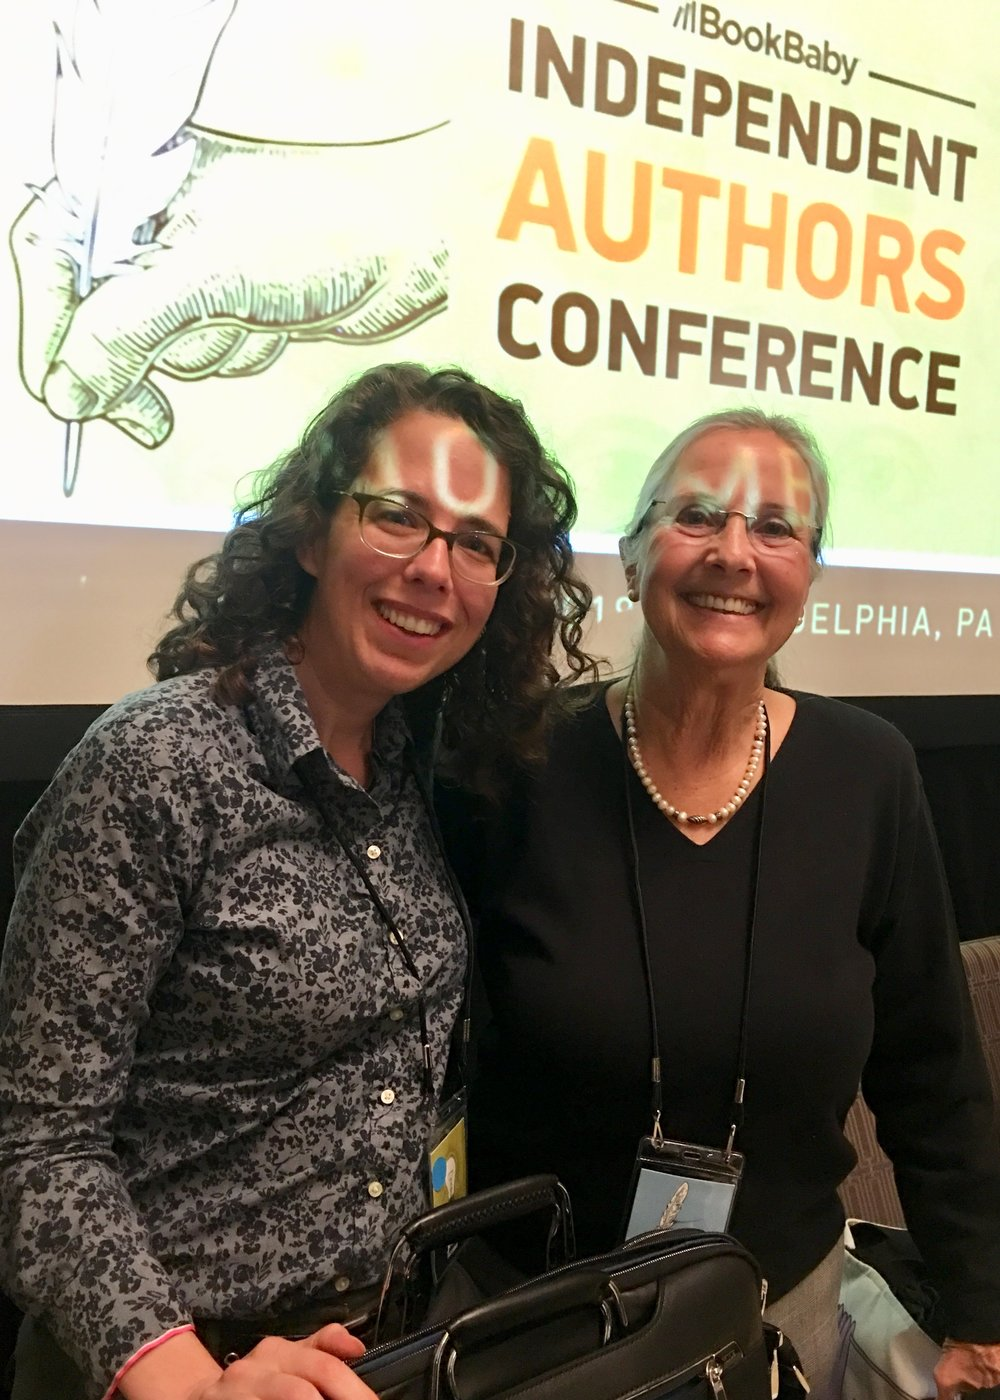 Professor Jane Friedman, self publishing and independent author guru!